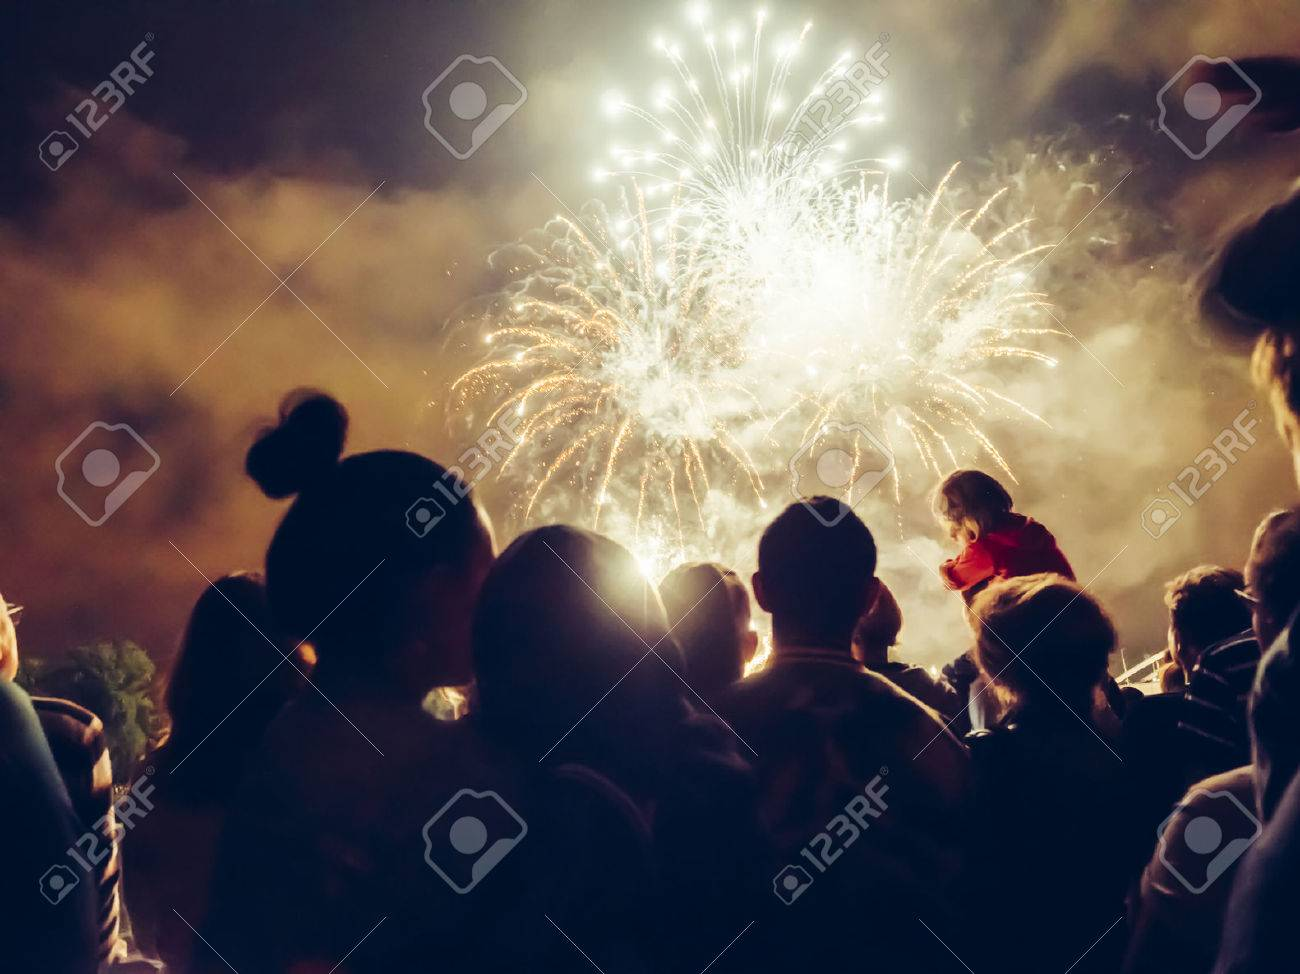 Crowd wathcing fireworks and celebrating Stock Photo - 44067025